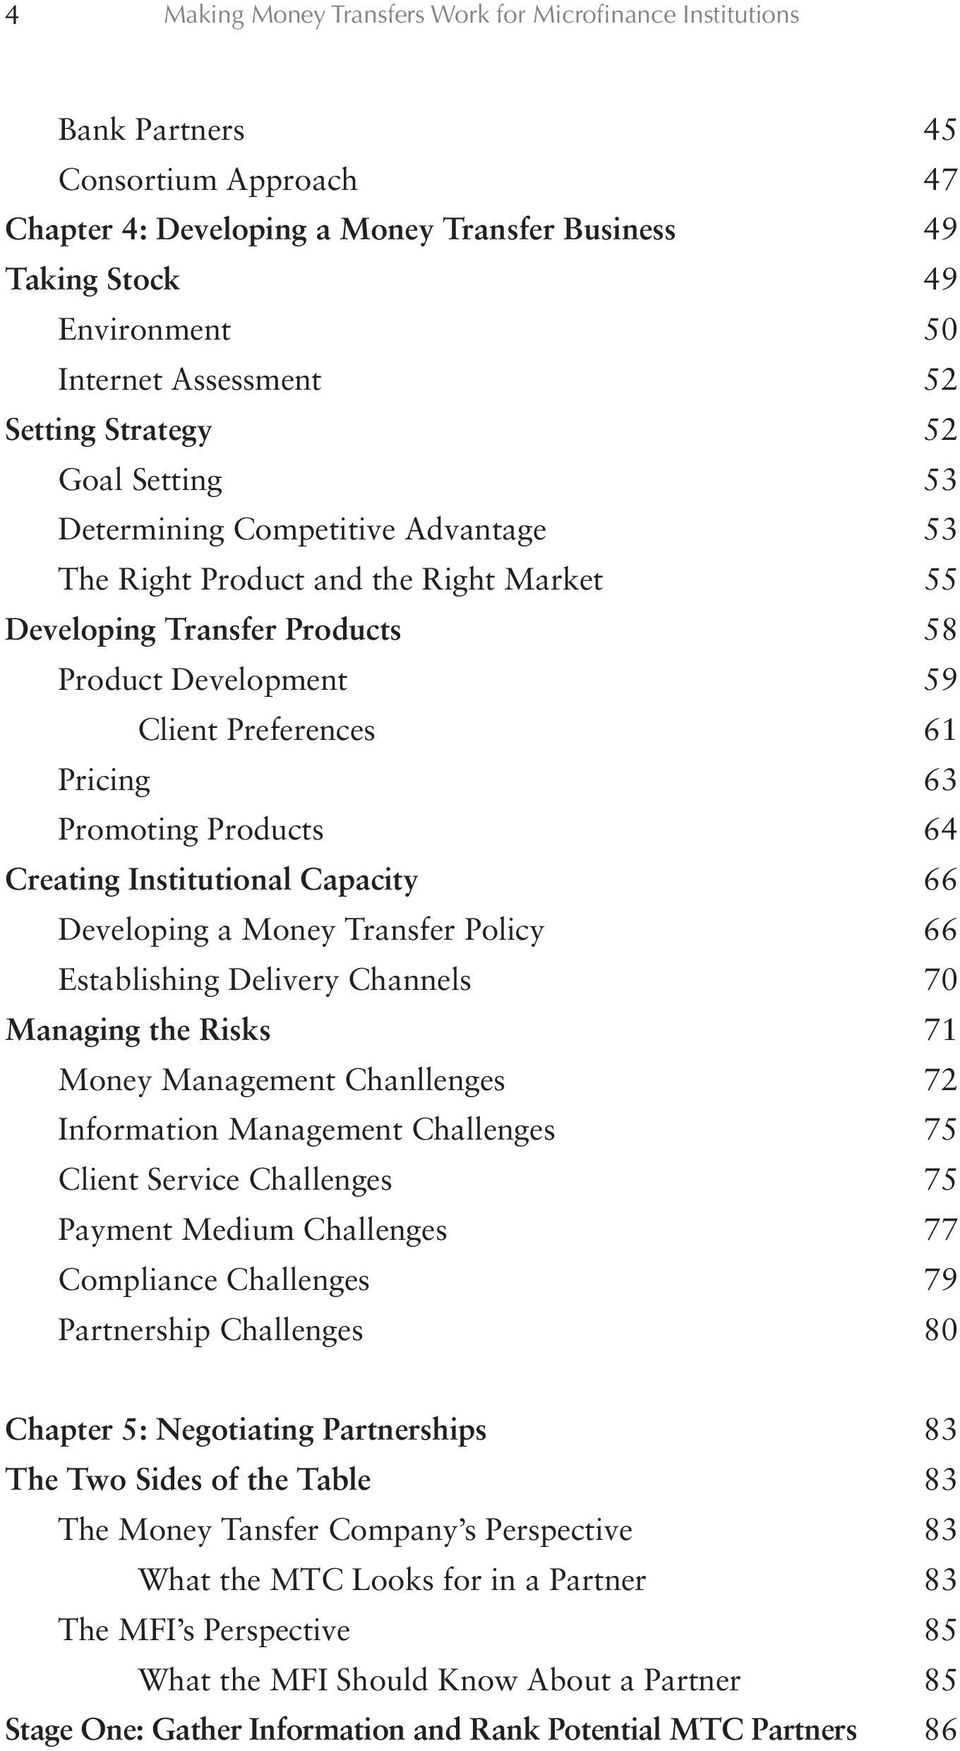 Preferences 61 Pricing 63 Promoting Products 64 Creating Institutional Capacity 66 Developing a Money Transfer Policy 66 Establishing Delivery Channels 70 Managing the Risks 71 Money Management